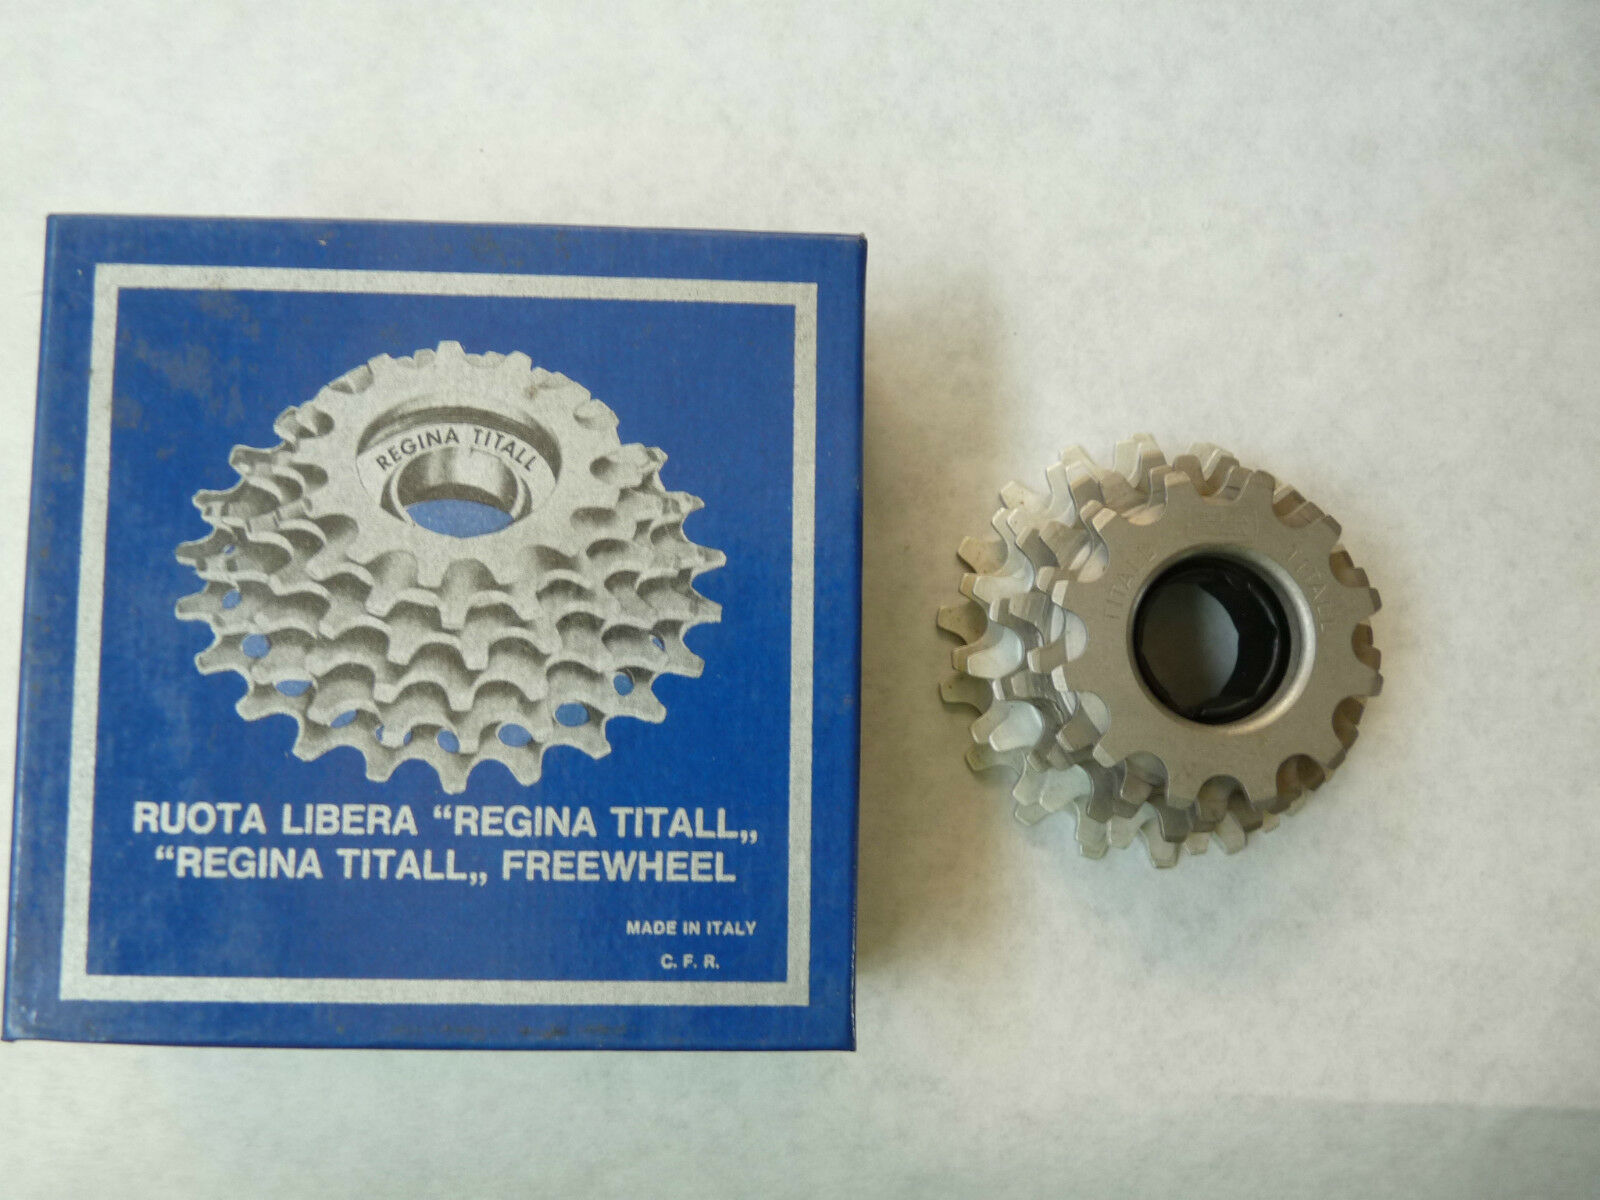 Regina Titanium Freewheel 7 Speed  12-18 ISO Vintage Road Bike 227 grams NOS  fast shipping and best service